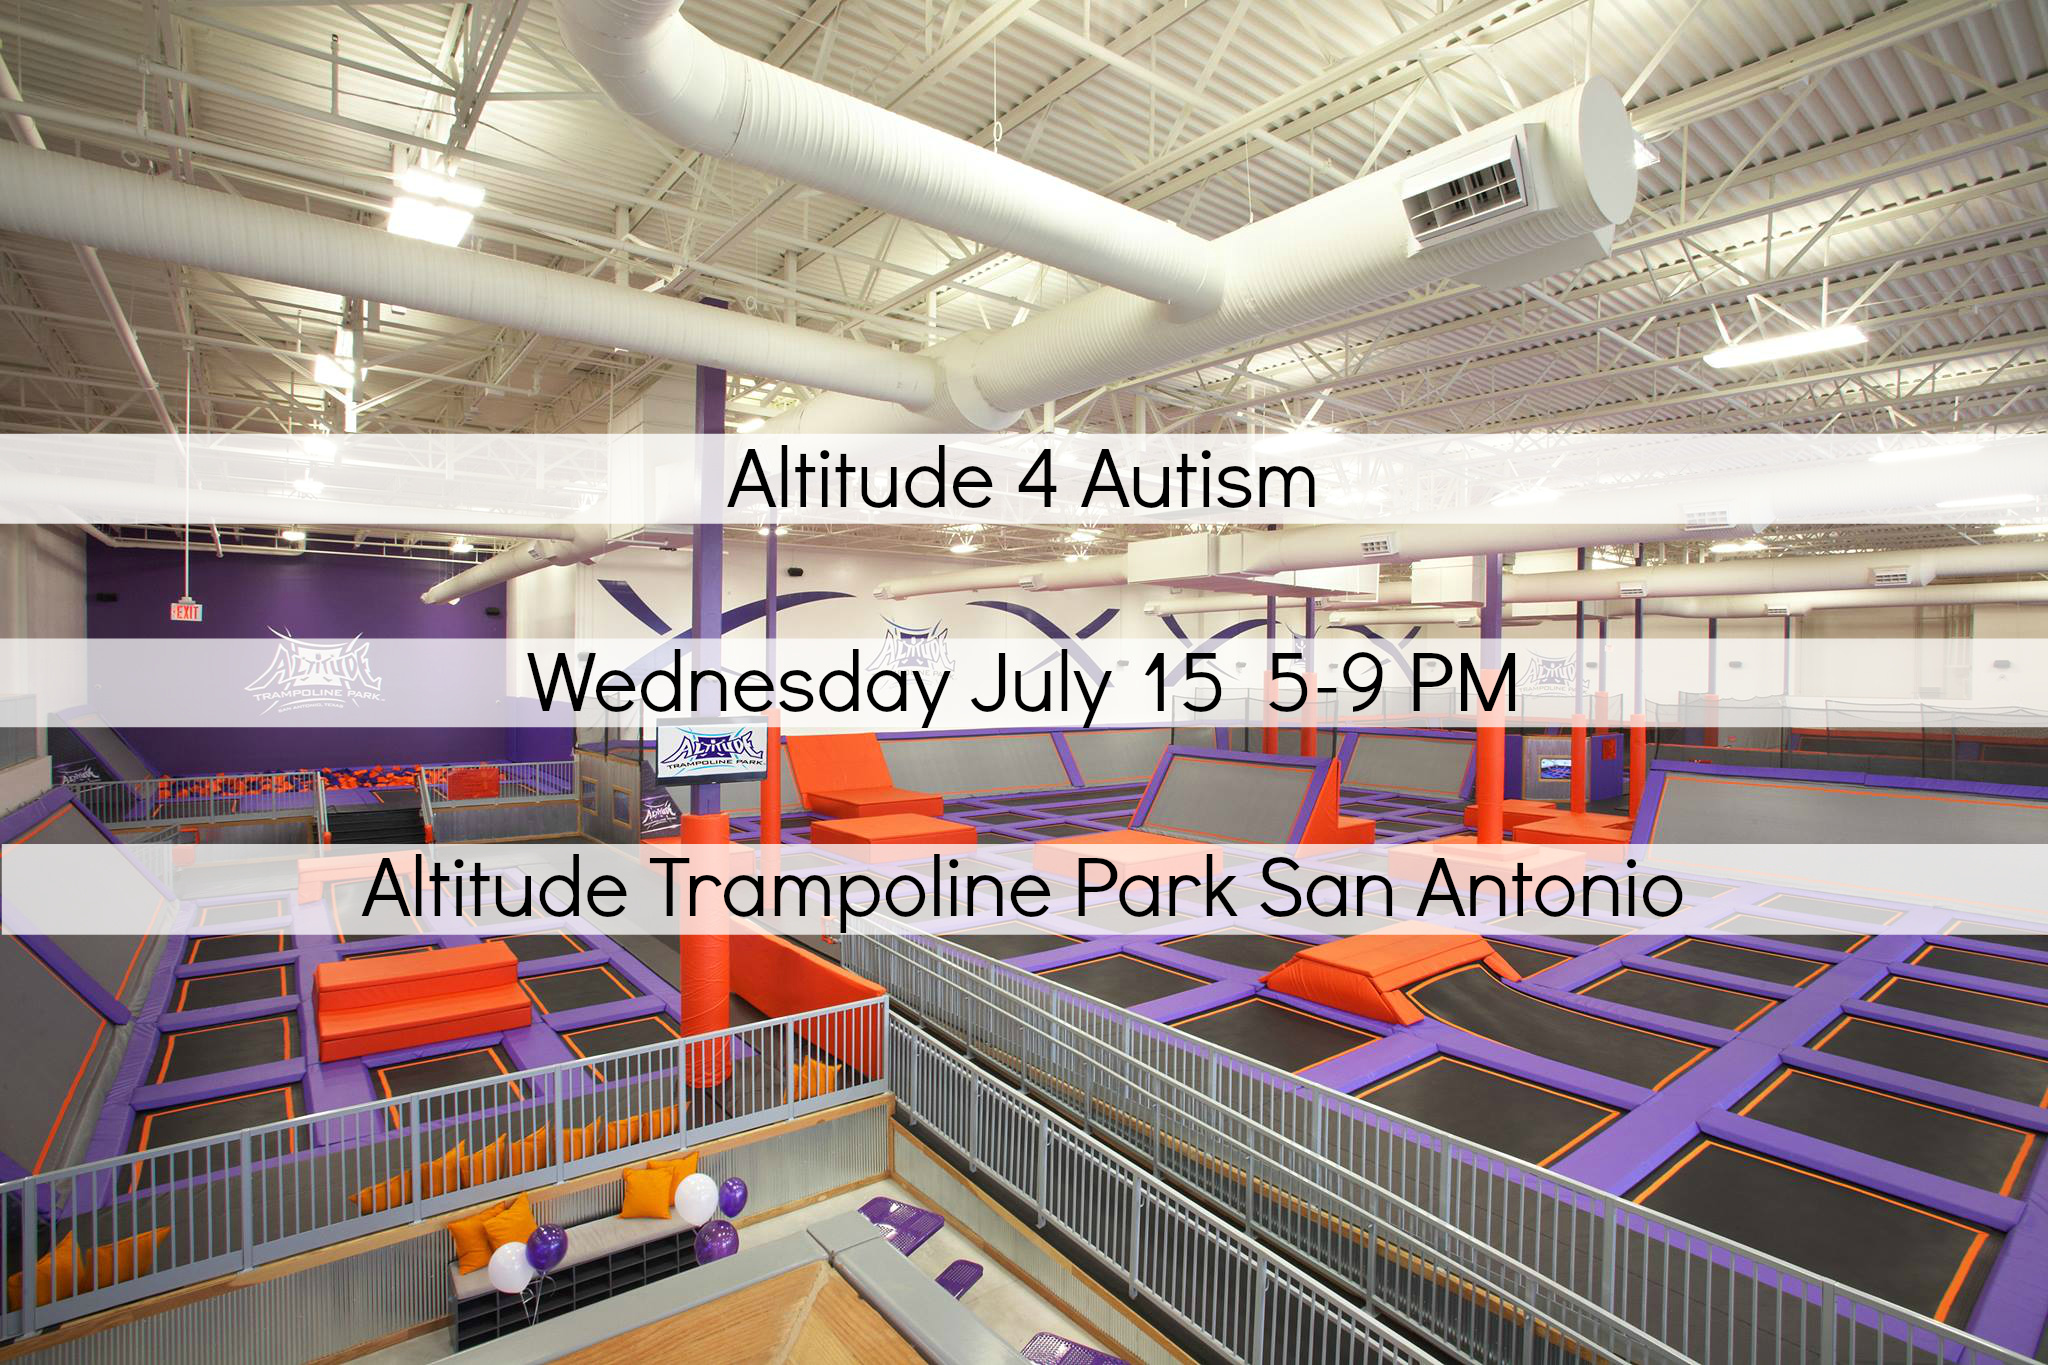 Altitude for autism San Antonio Texas at Altitude trampoline park July 15